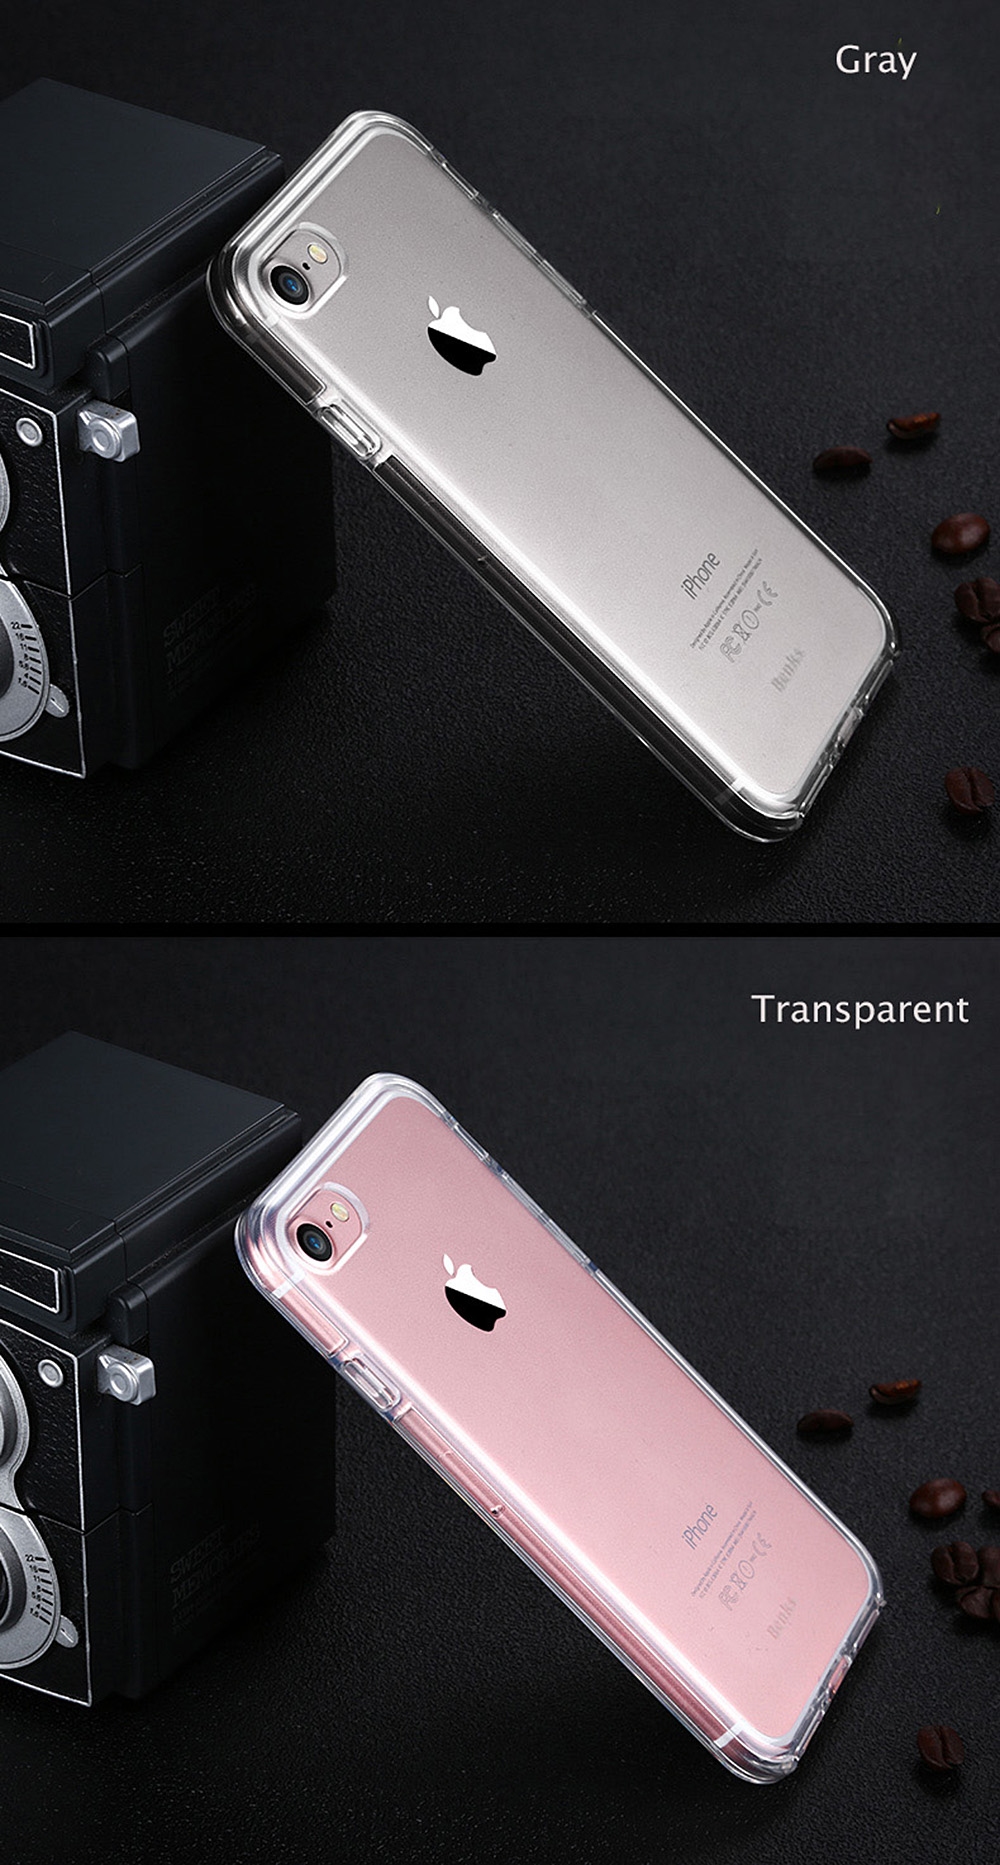 Benks TPU Transparent Phone Back Case Incoming Call Flash Protector for iPhone 7